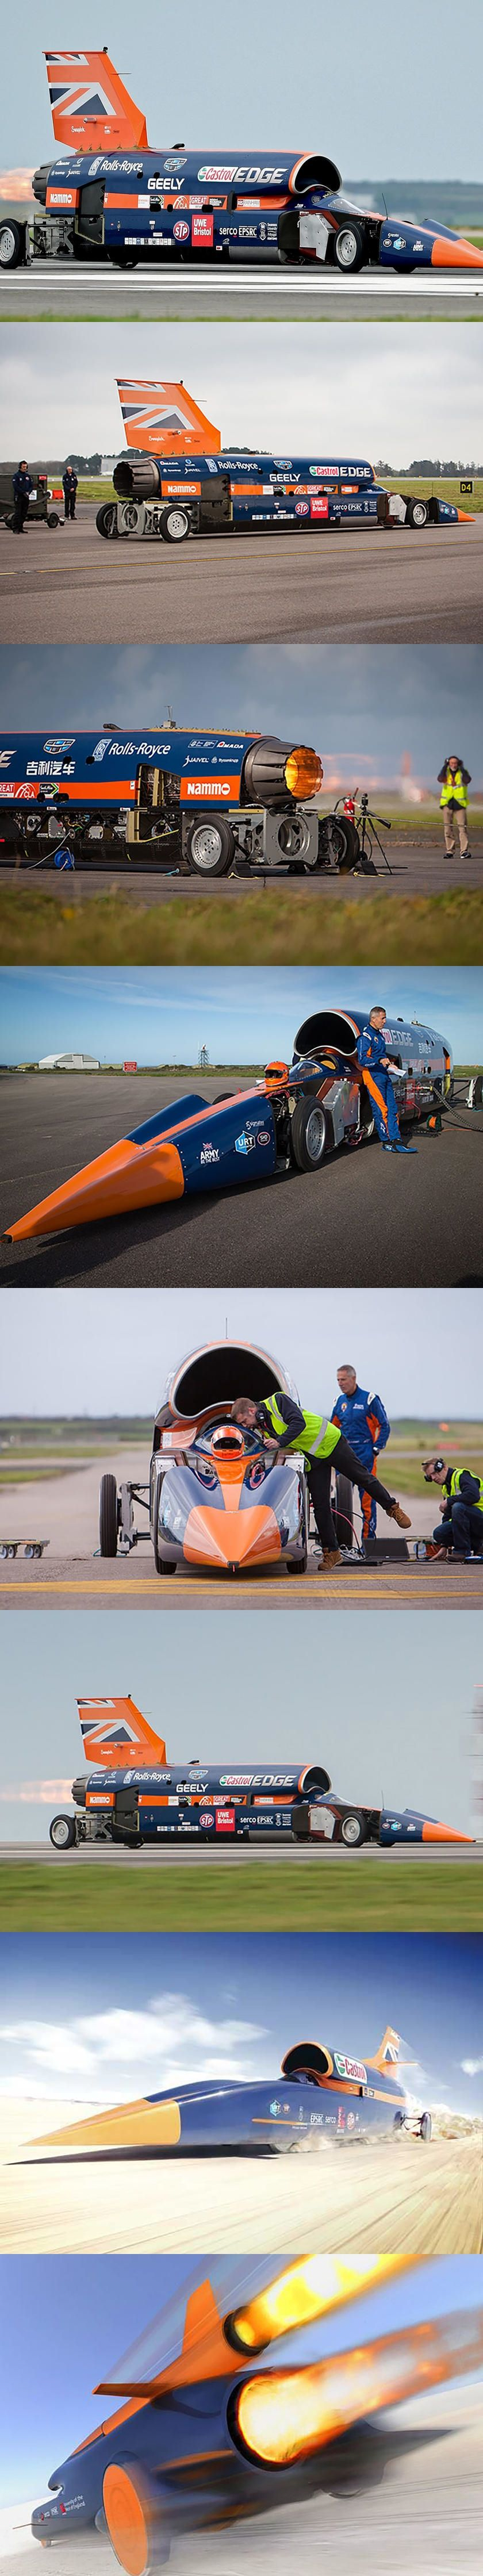 Bloodhound Supersonic Car Scrapped Before 1000 Mph Record Attempt After 11 Years The Dream To Set A New Land Speed Record Is Over Bloodhound Car Records